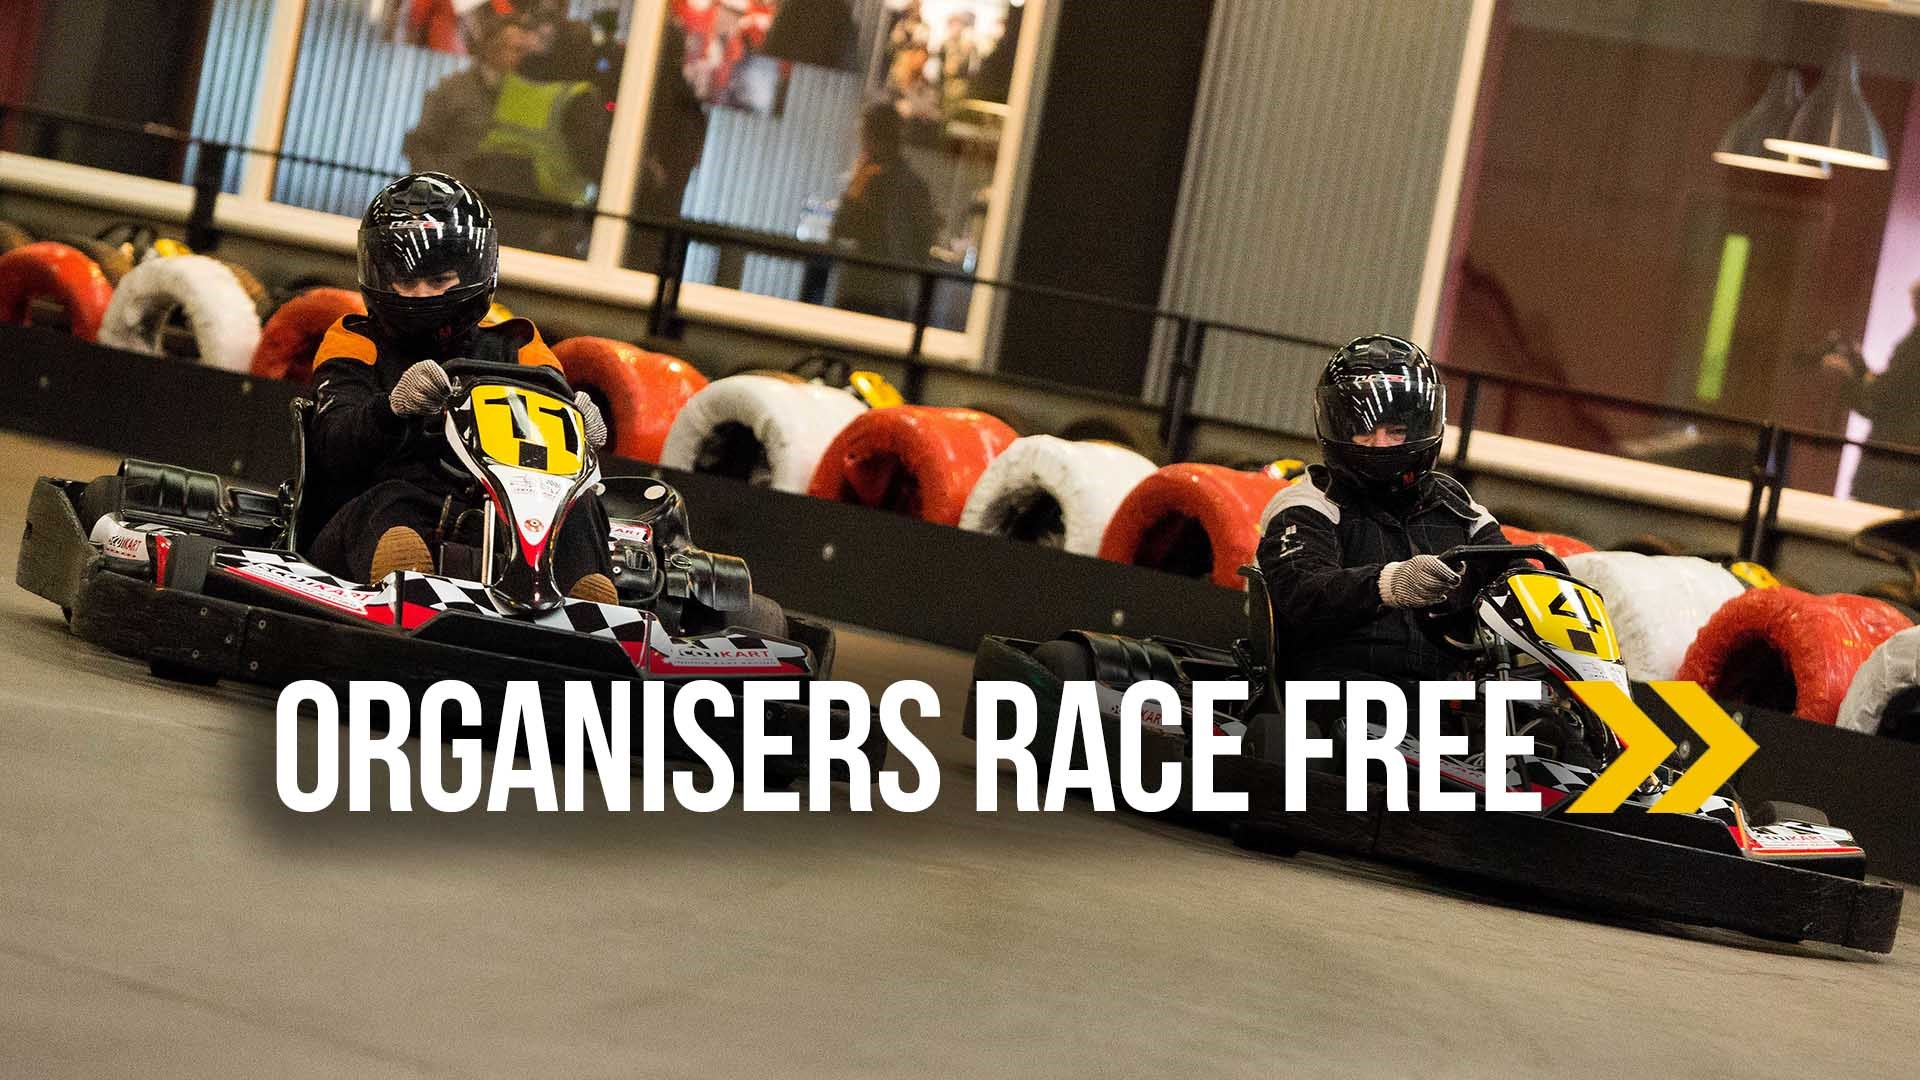 UNBELIEVABLE GO KARTING OFFERS - Organisers Race Free